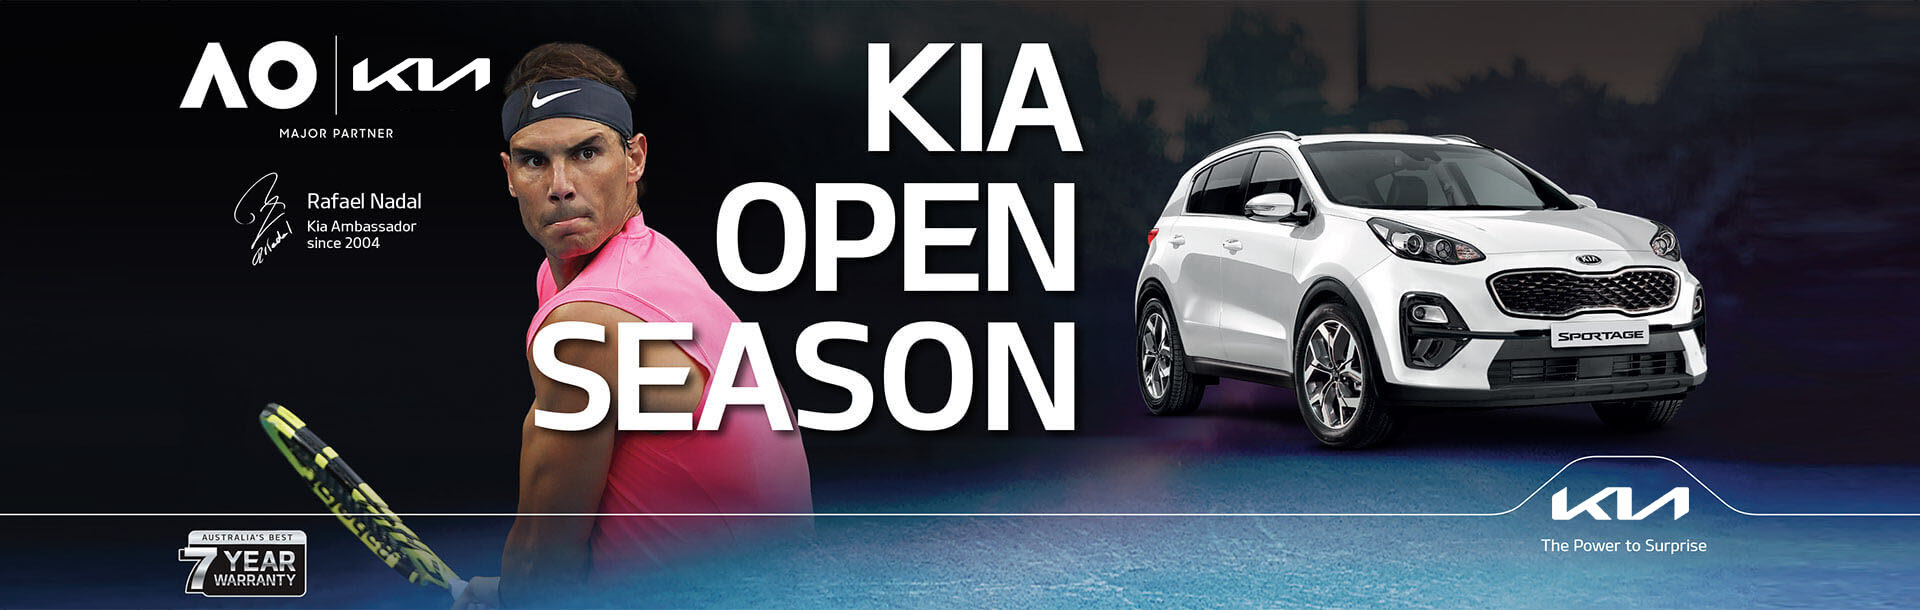 Kia Open Season